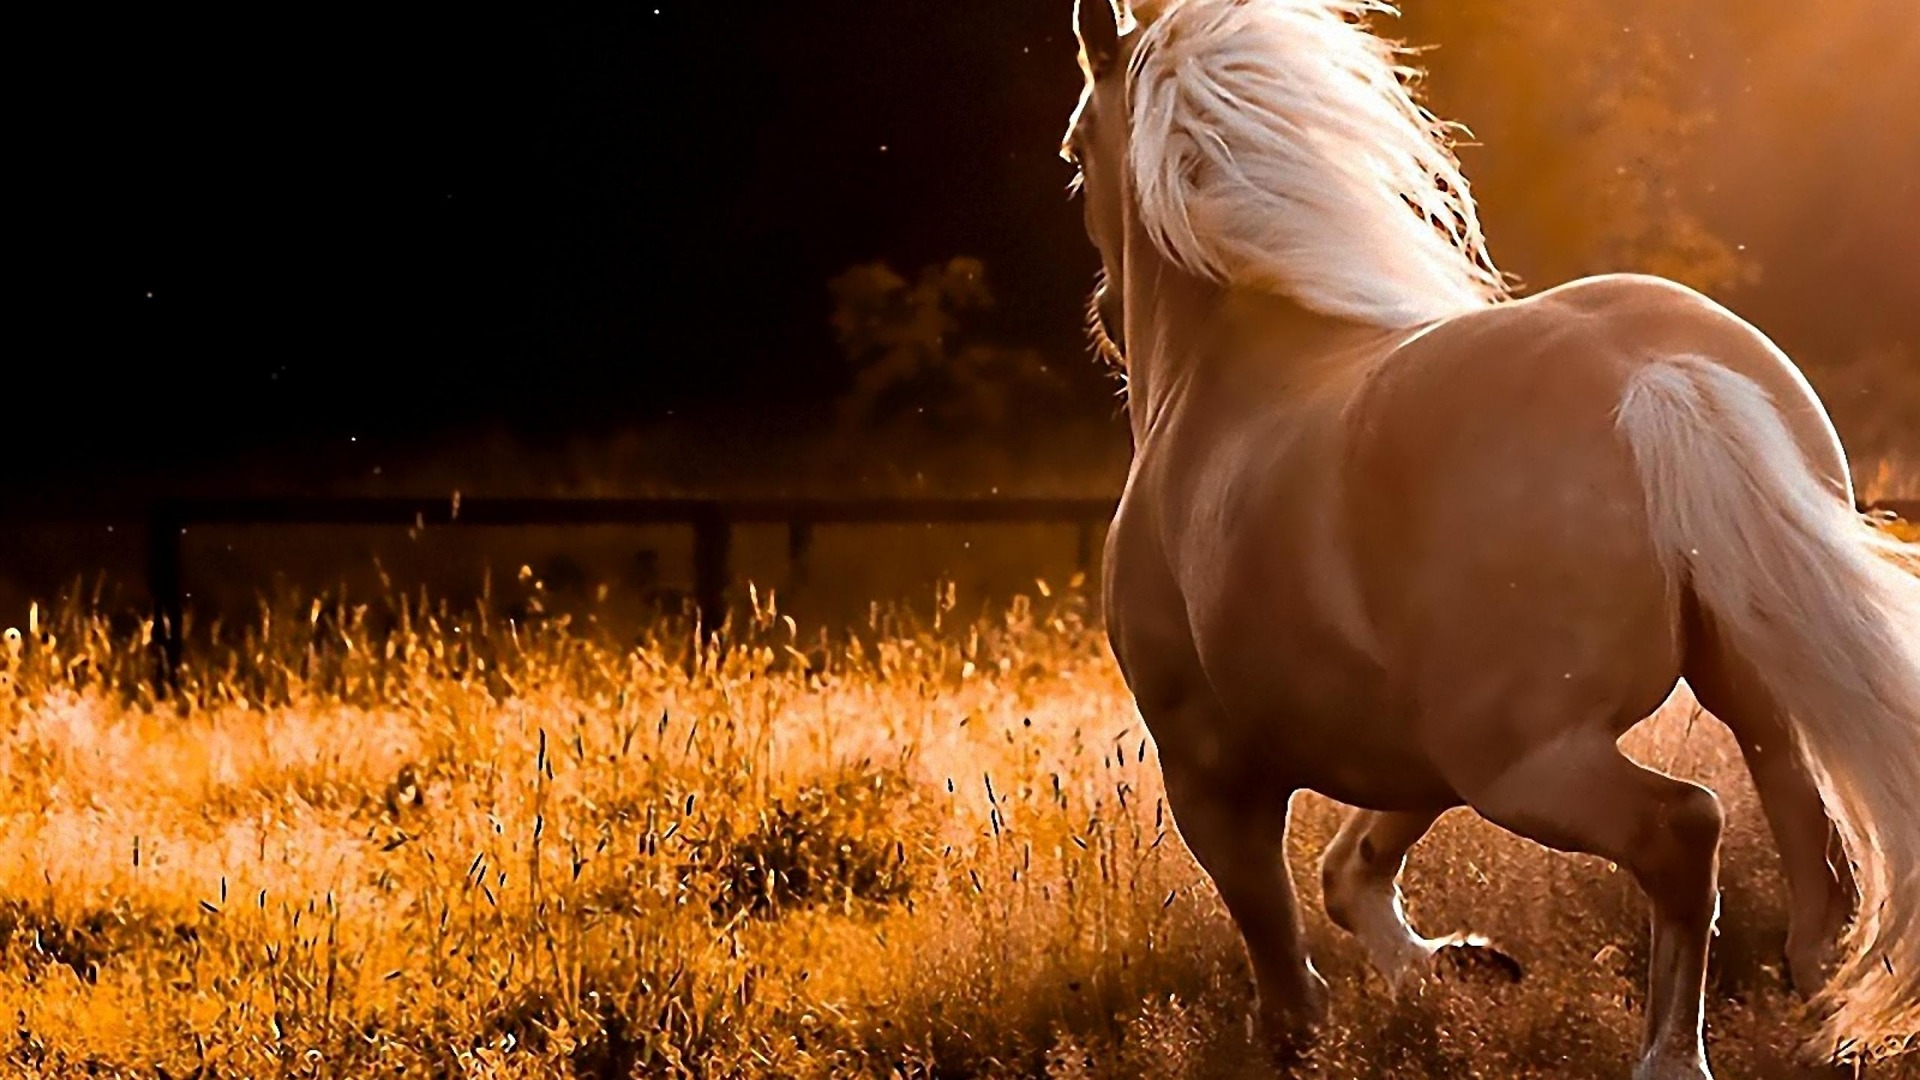 Fantastic Wallpaper Horse Country - tumblr_static_horse_run-animal_photography_wallpaper_1920x1080  2018_1002419.jpg